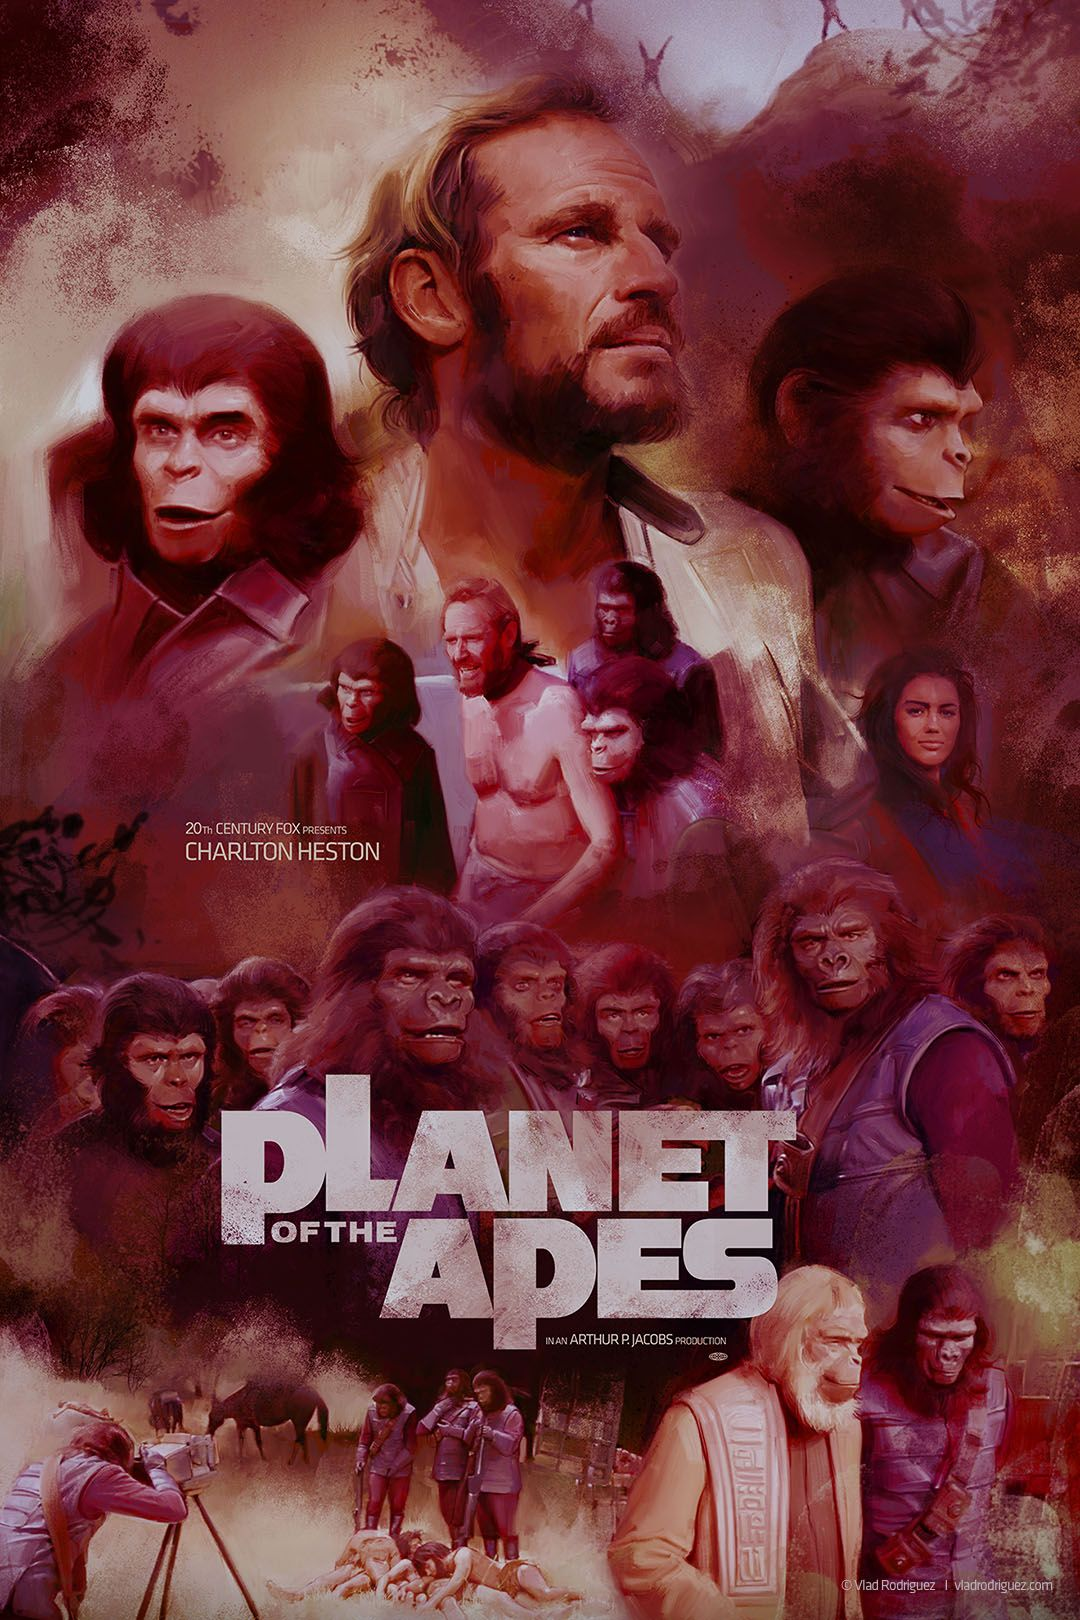 Planet Of The Apes 1968 Hd Wallpaper From Gallsource Com With